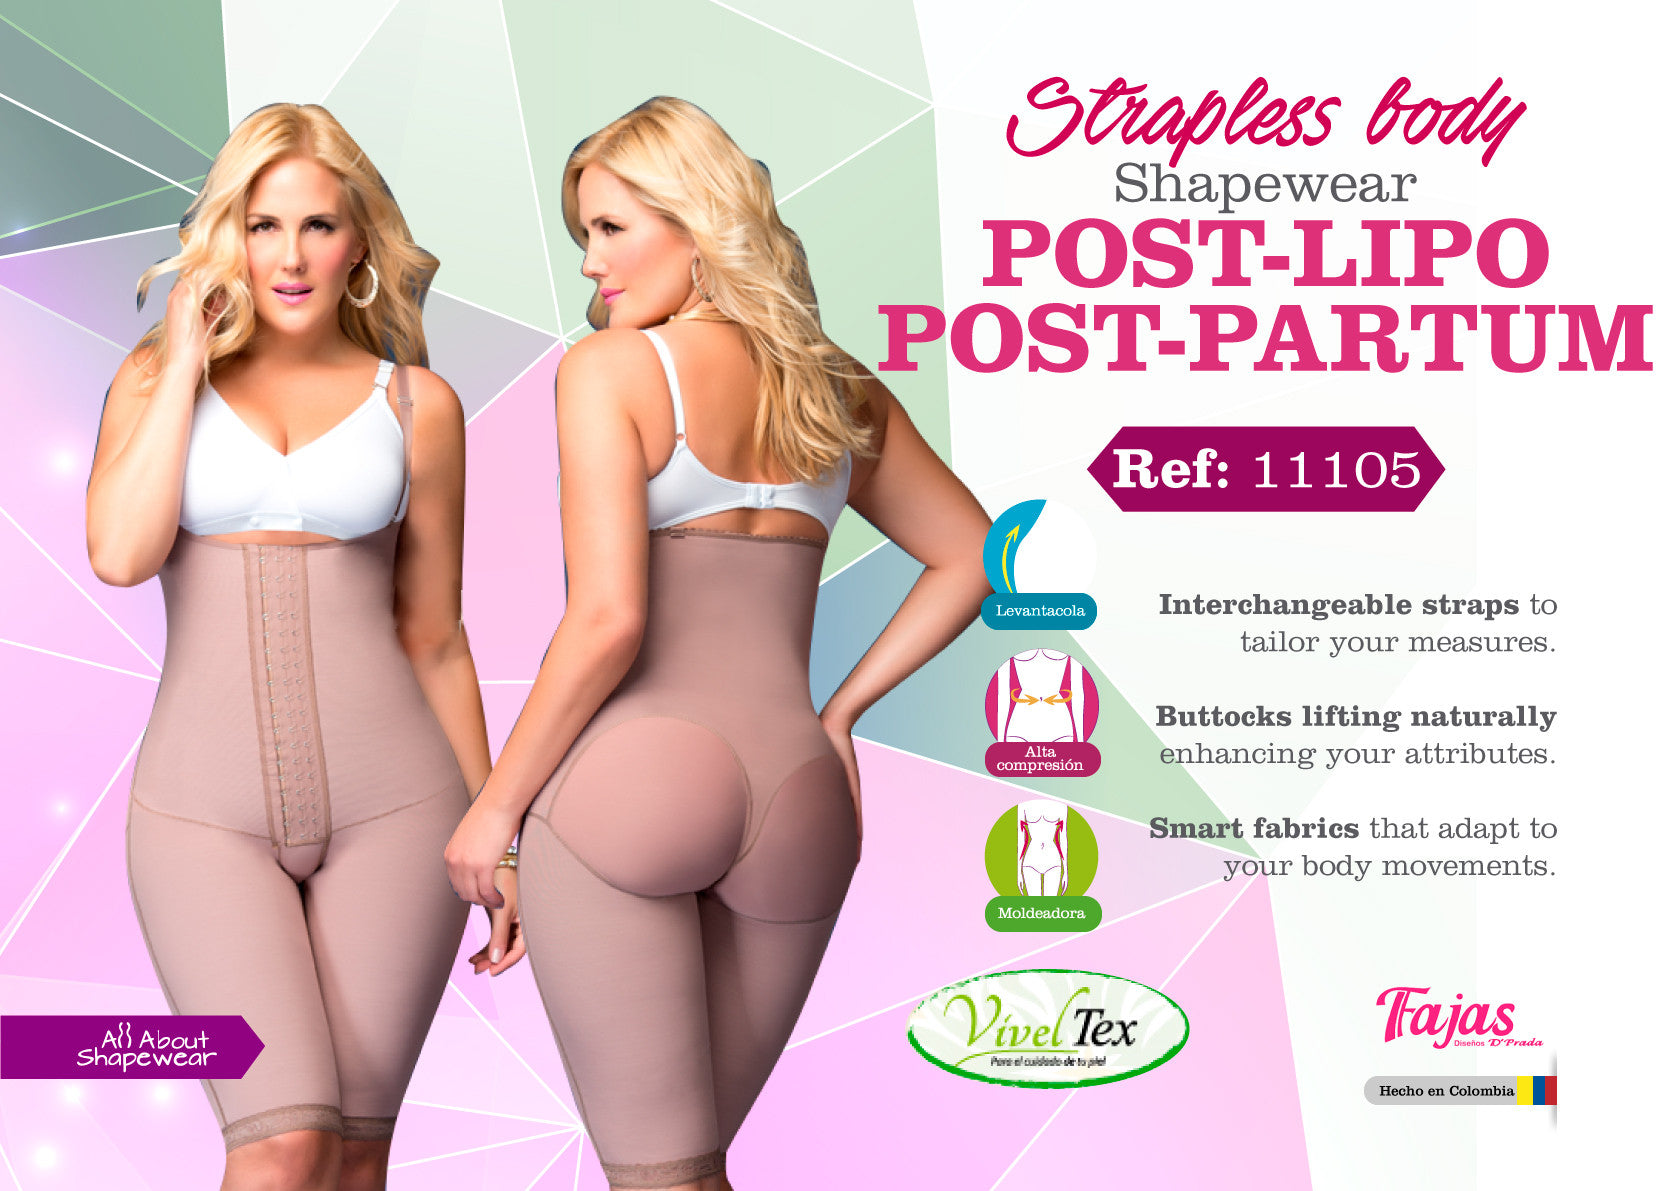 Strapless body shapewear post-lipo post-partum Ref: 11105